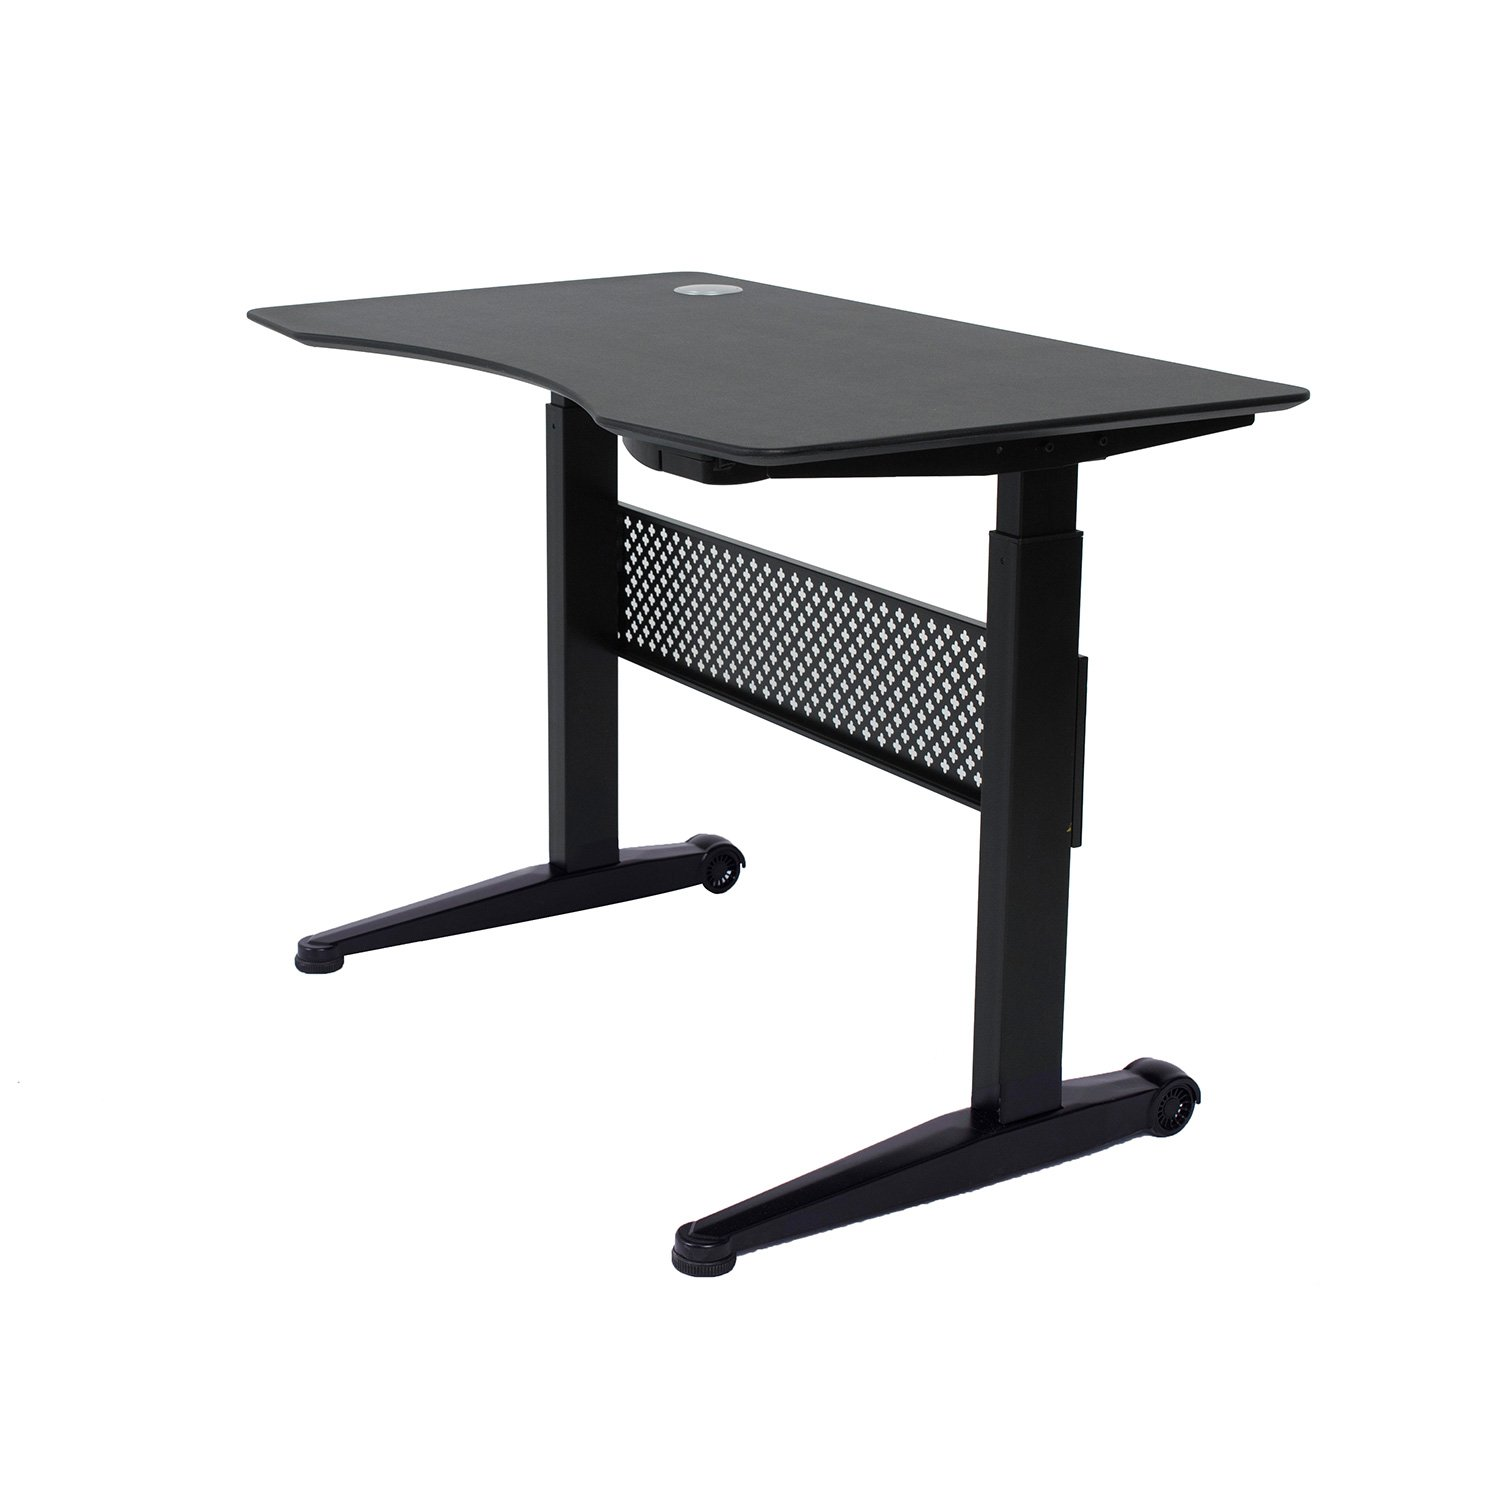 "Apex Desk Air Desk Series 59""X29"" Movable Sit/Standing Desk, Pneumatic Height Adjustable From 29"" To 48"" (59x29"" Textured Black Top, Black, Frame) by Apex Desk"